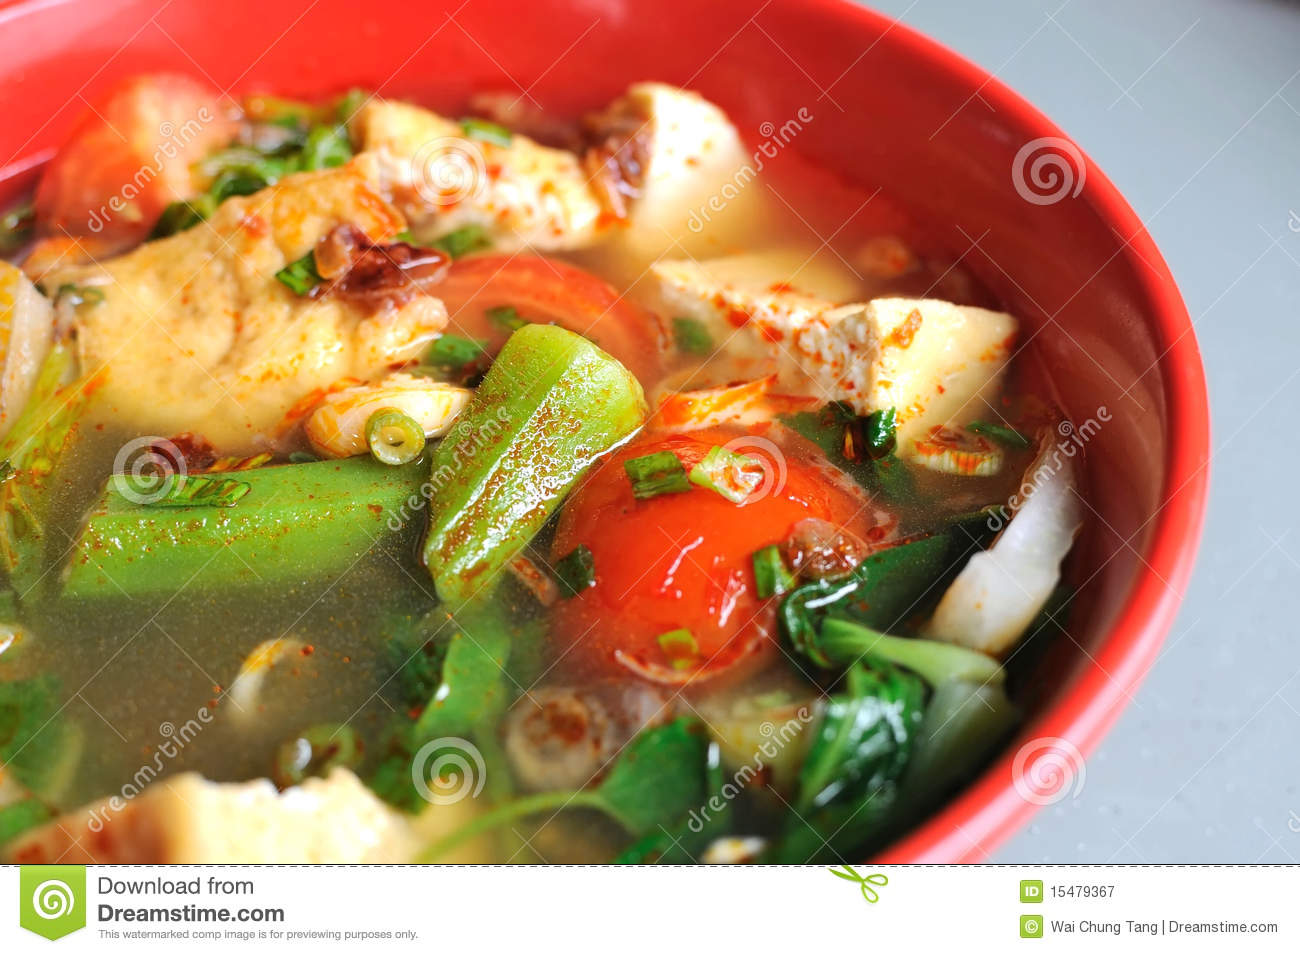 Calories in spicy asian vegetable soup speaking, did